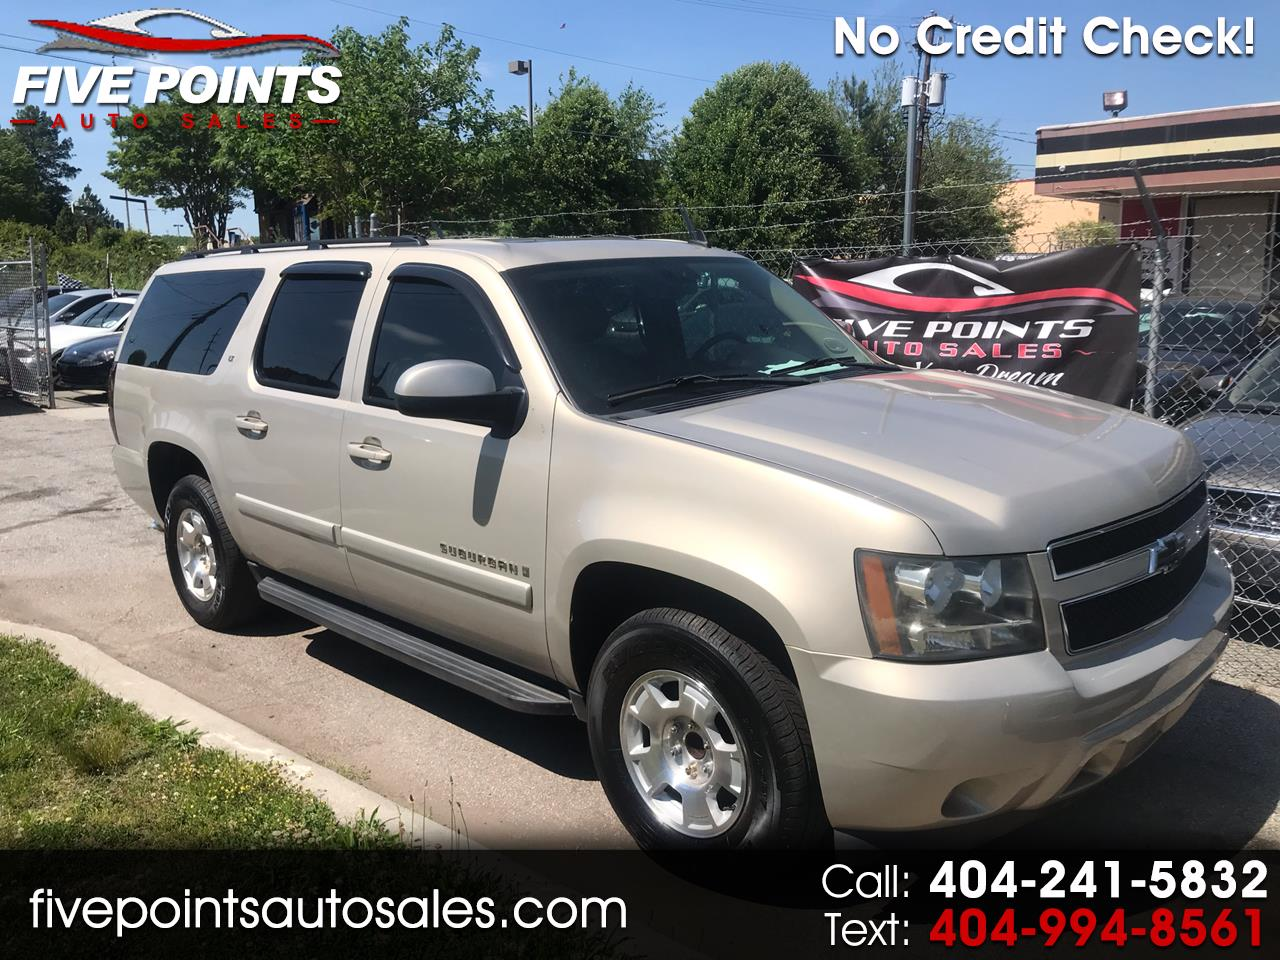 Five Points Auto Sales >> Used Cars For Sale Decatur Ga 30032 Five Points Auto Sales